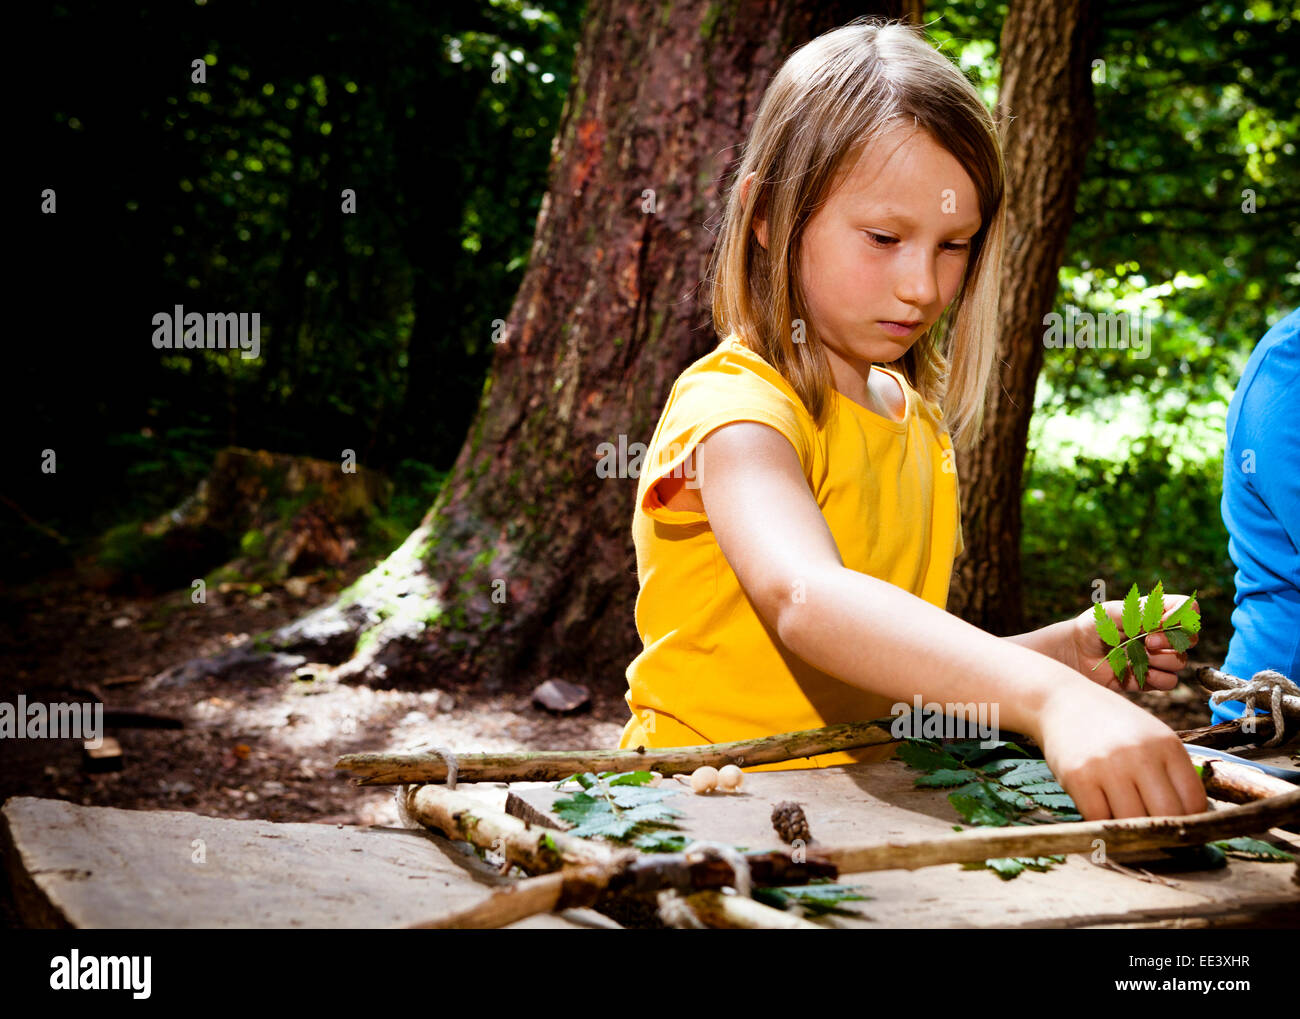 Schoolgirl crafting in a forest camp, Munich, Bavaria, Germany - Stock Image